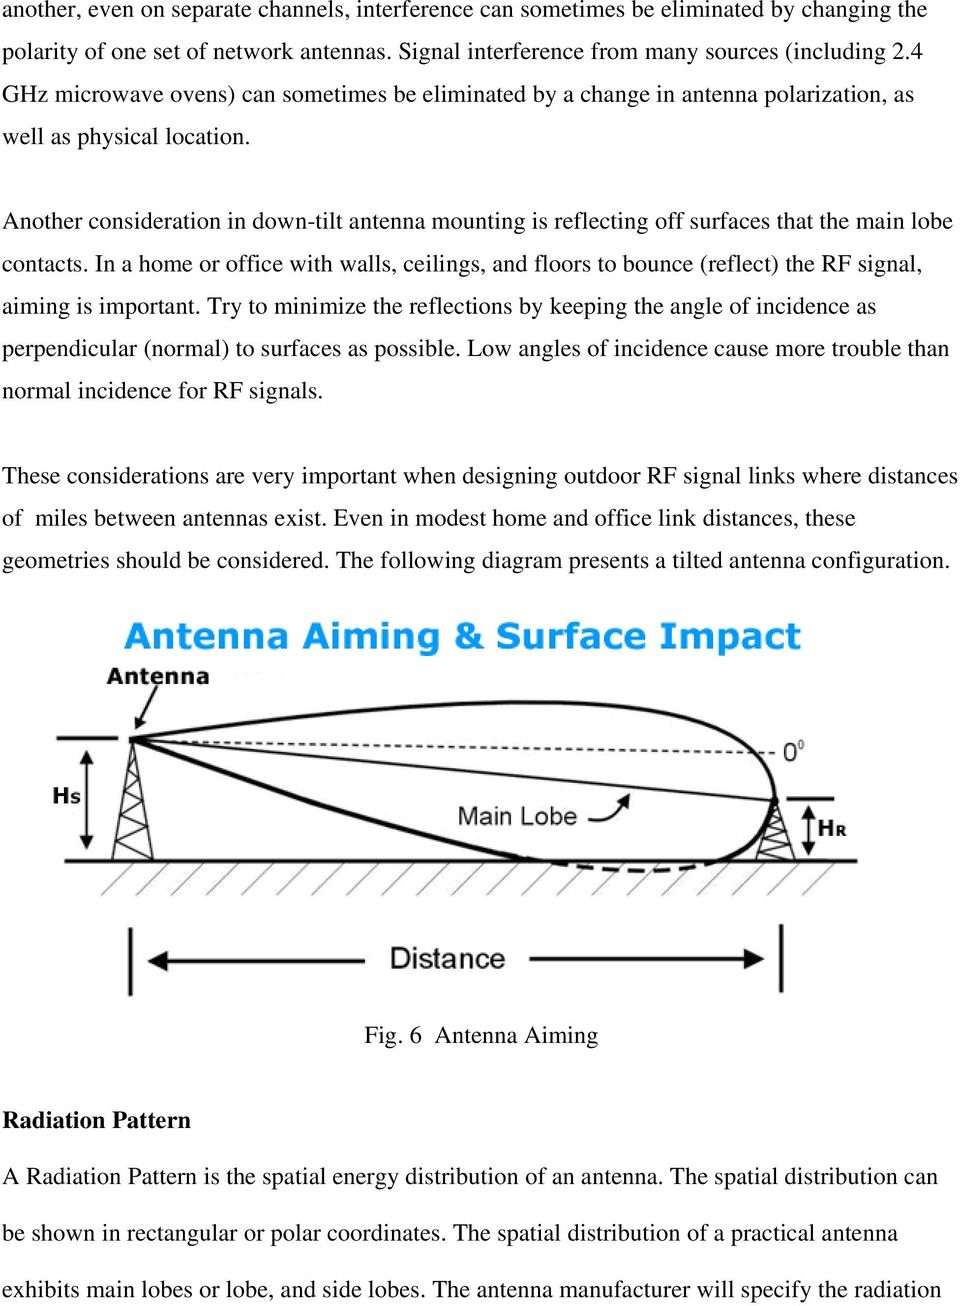 Another consideration in down-tilt antenna mounting is reflecting off surfaces that the main lobe contacts.